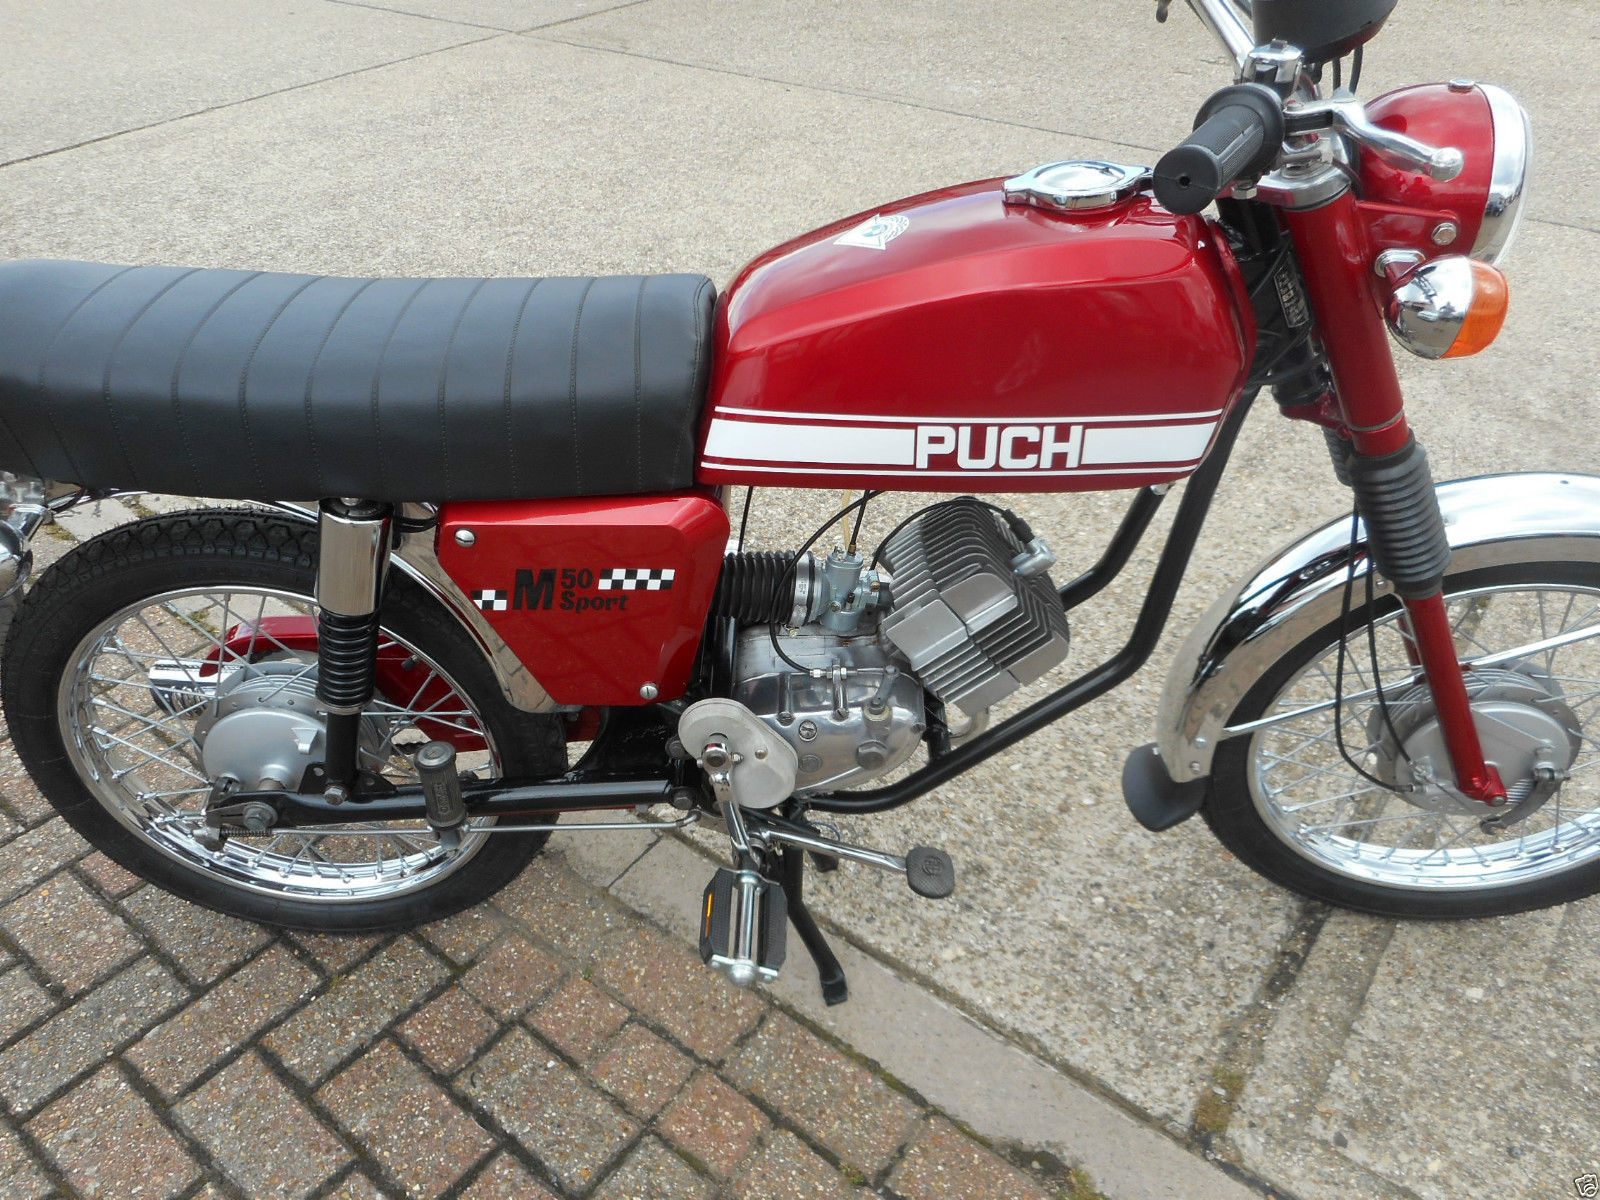 Puch M50 - 1974 - Restored Classic Motorcycles at Bikes